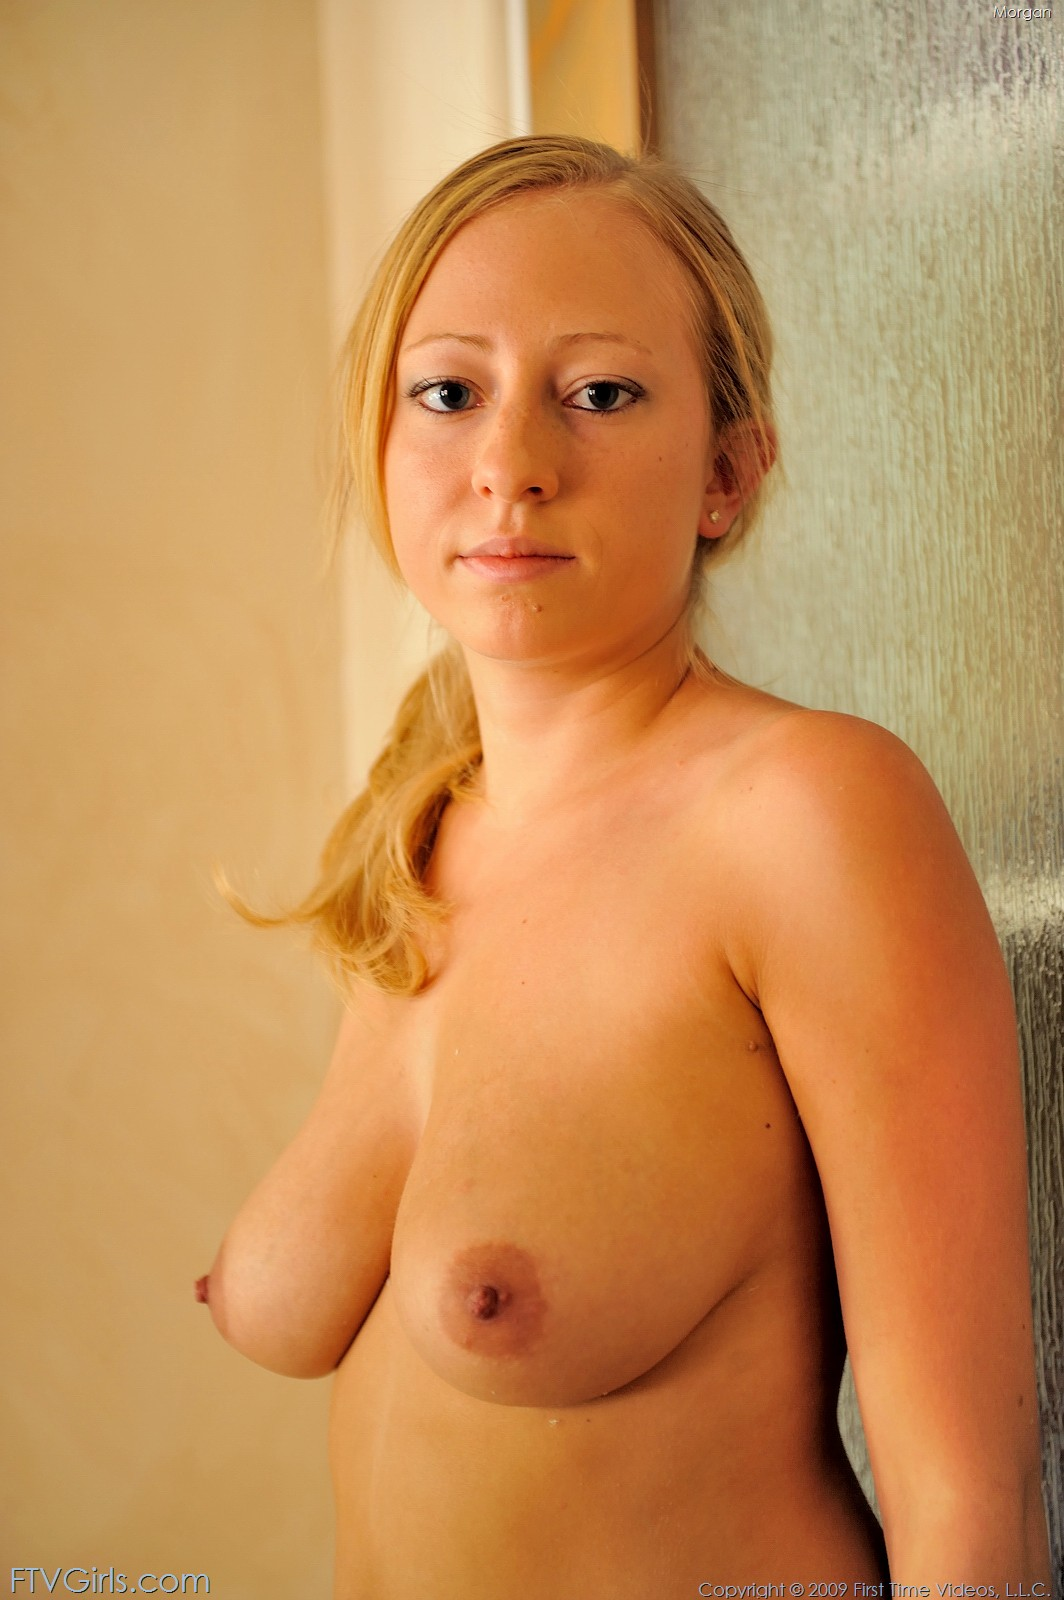 nude irani girls boobs